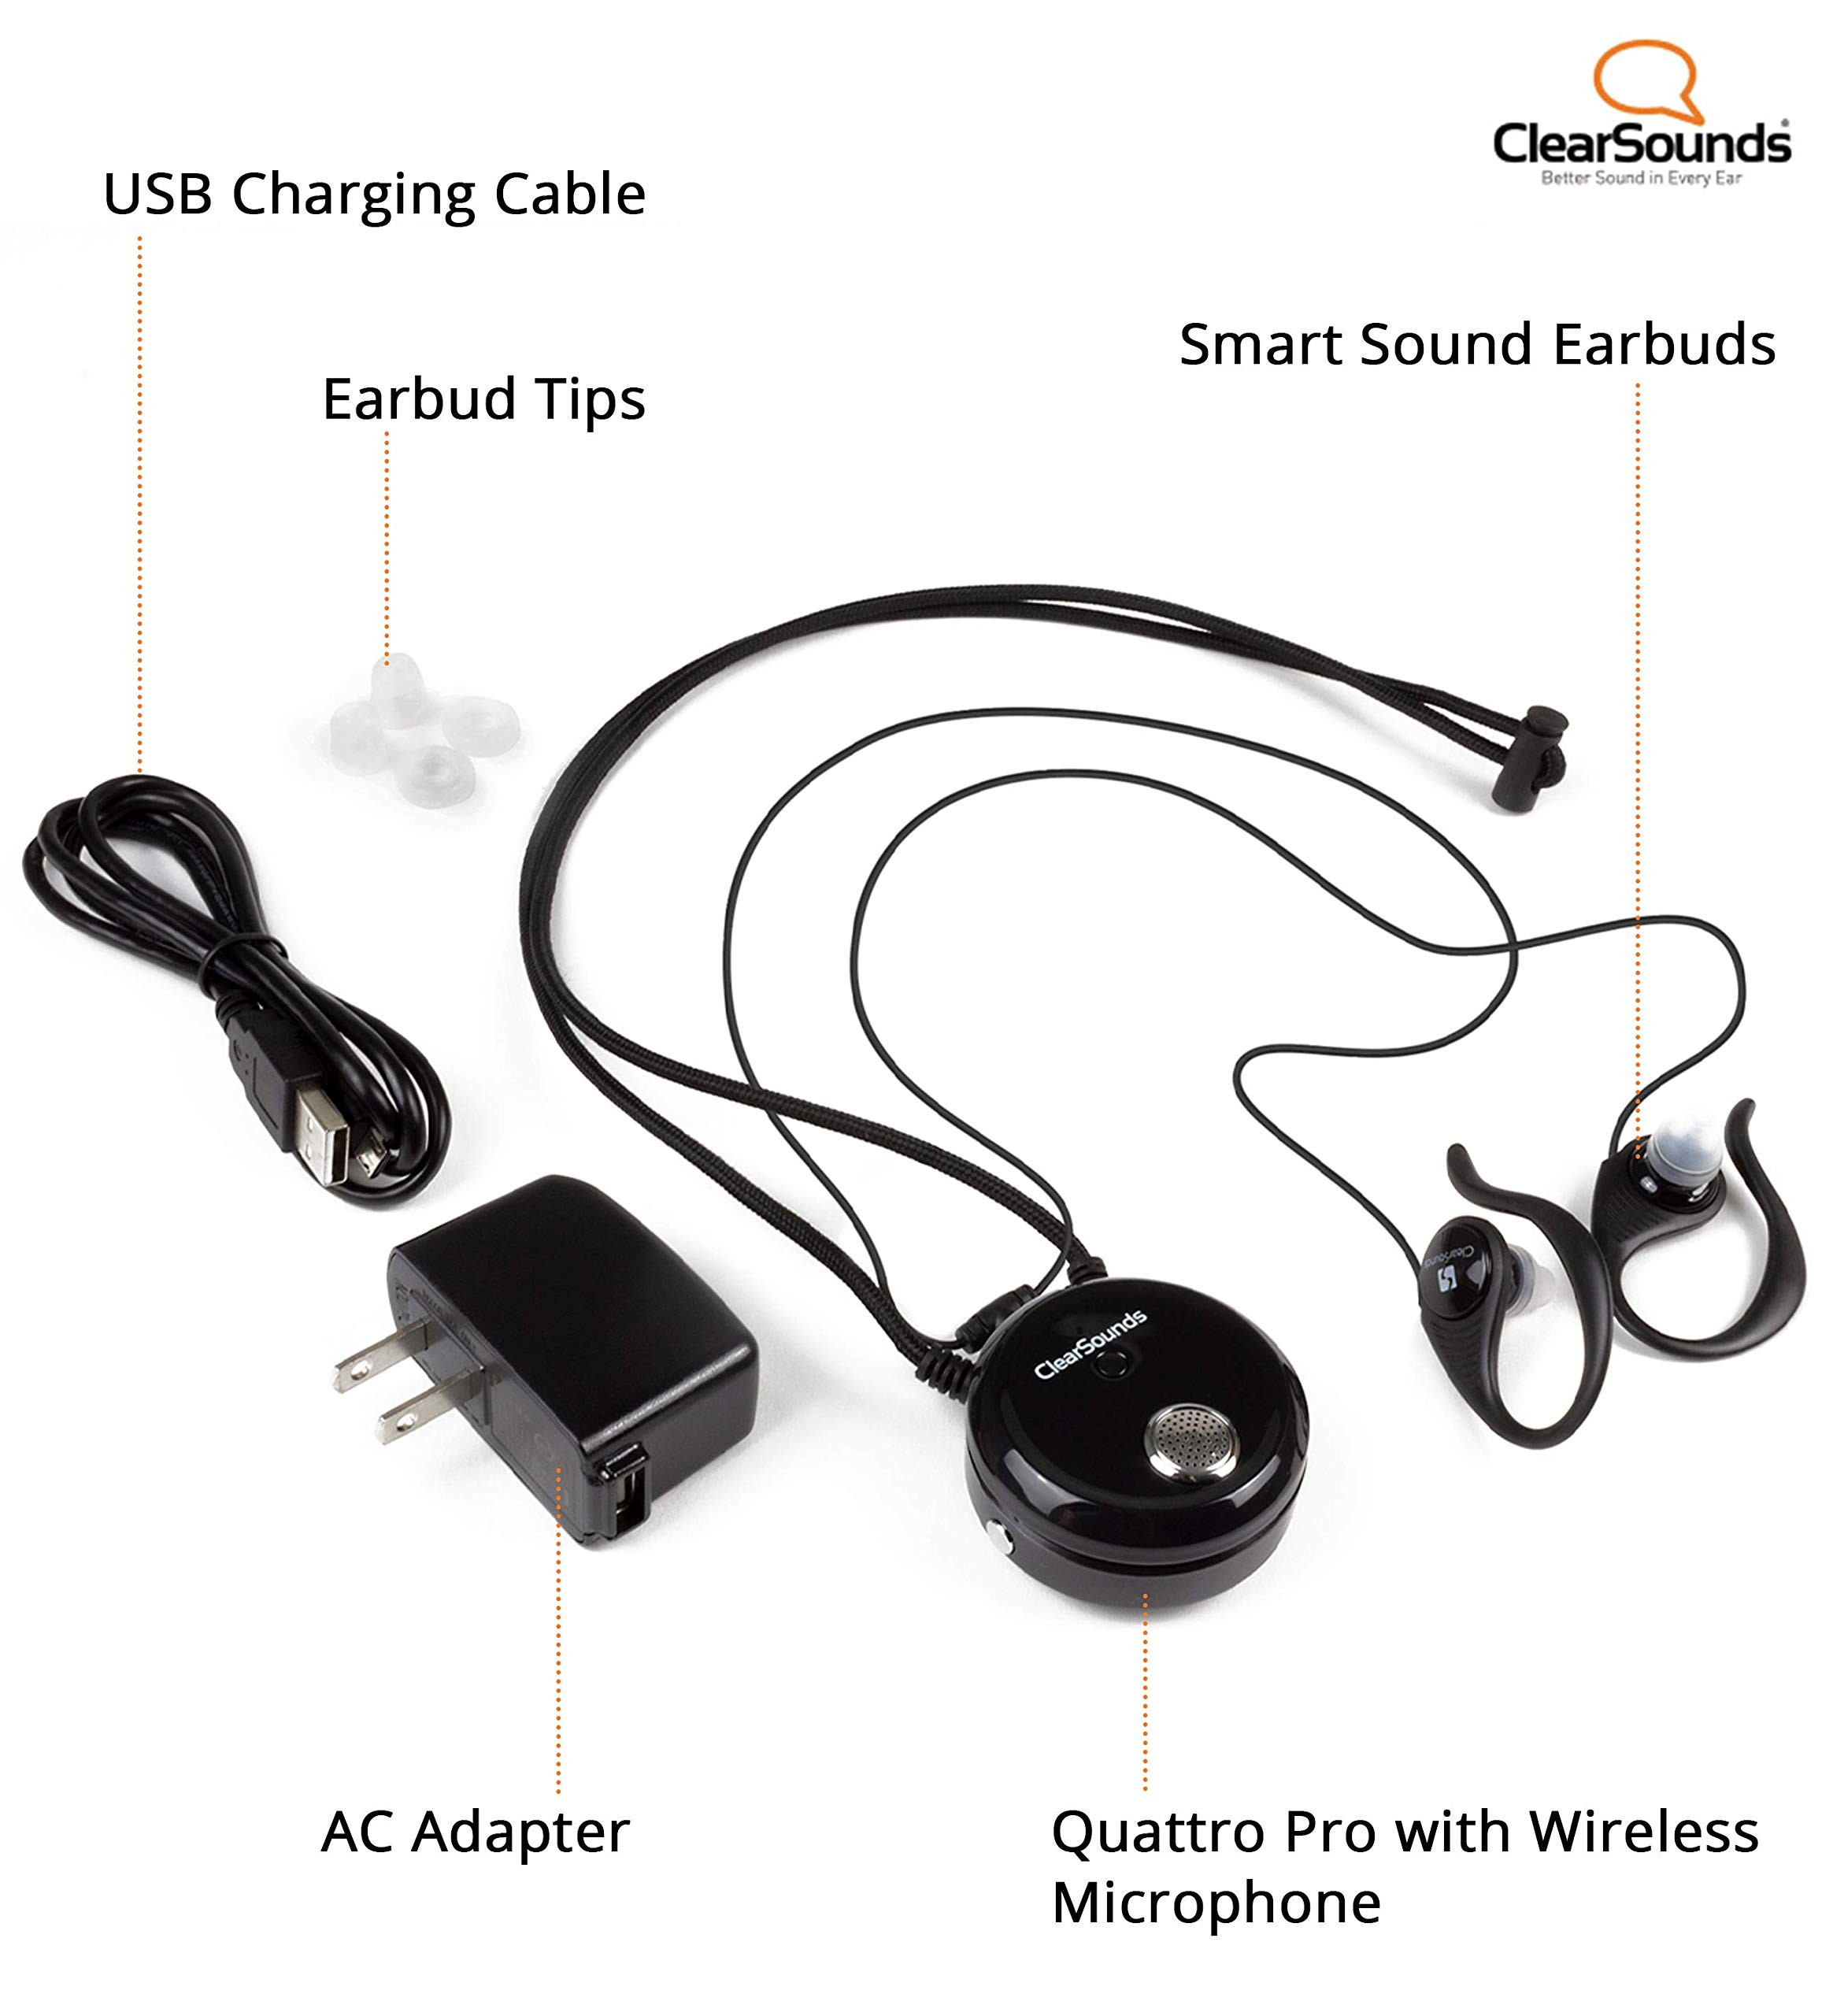 ClearSounds CSQTPRO Quattro Pro Portable Assistive Listening System - Bluetooth Neckloop and Removable Omni-Directional Microphone - T-Coil Hearing Aid Compatible by ClearSounds (Image #8)